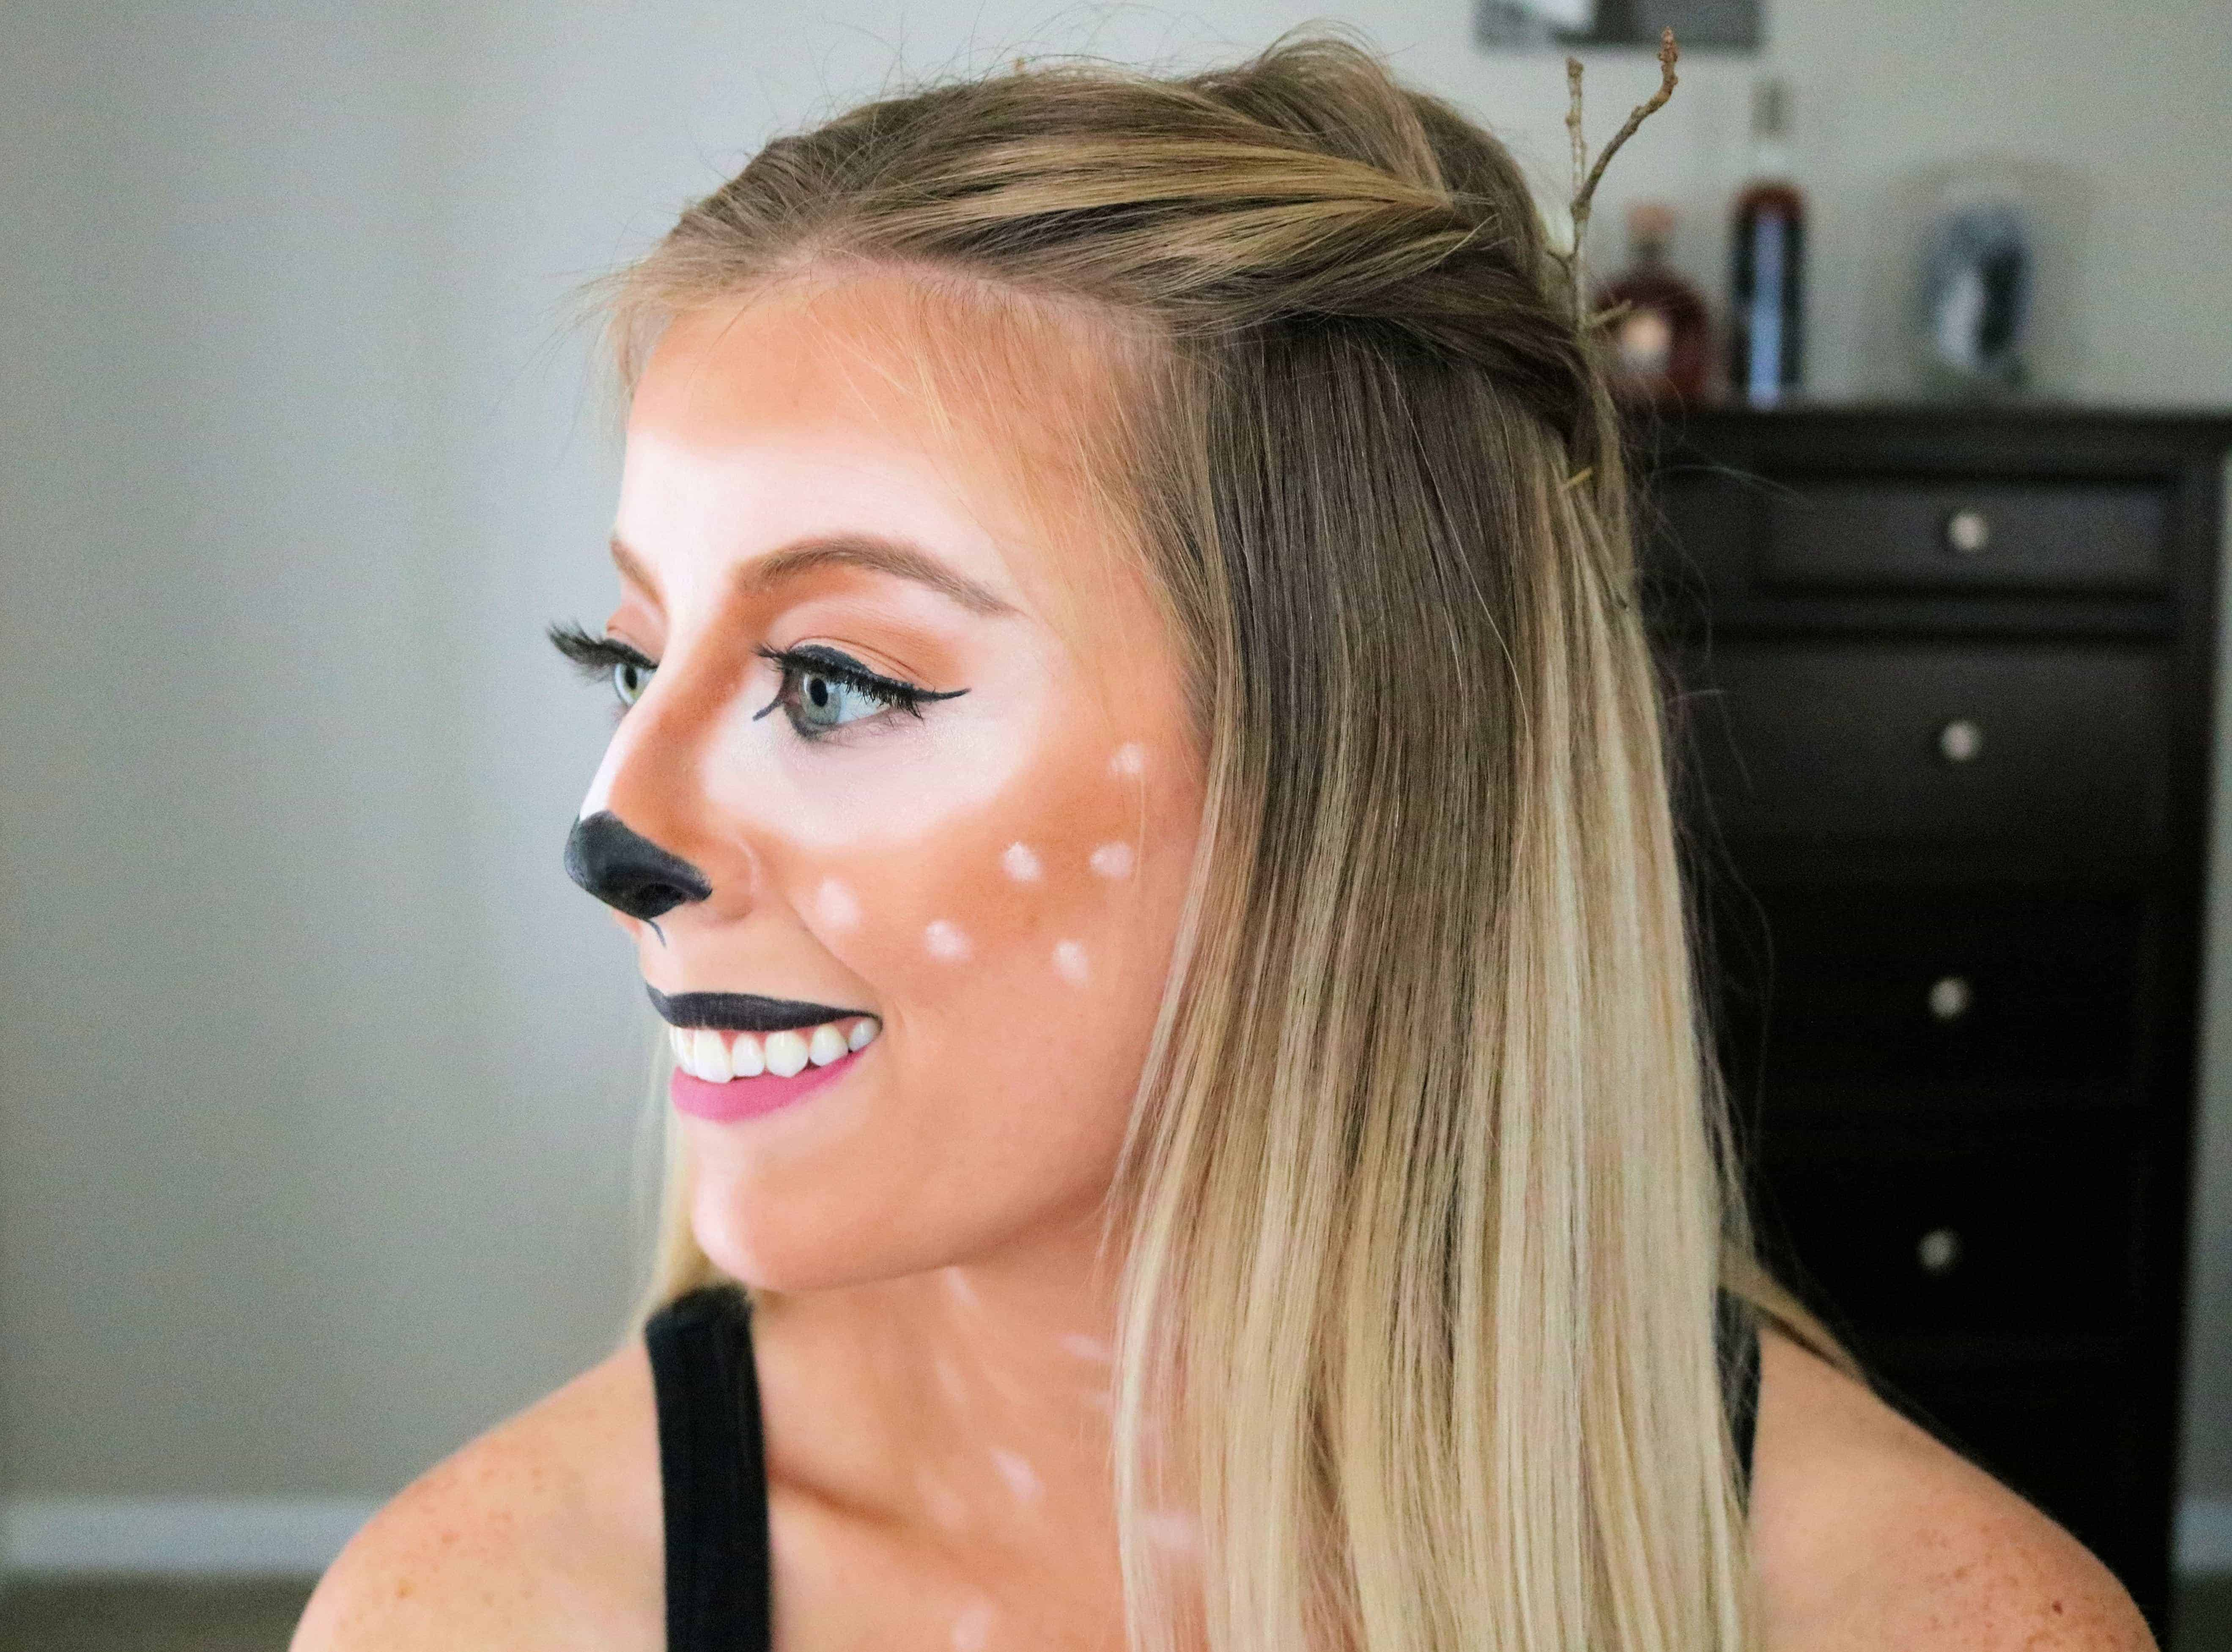 This deer makeup Halloween costume is so cute and easy to create! Check out my simple, step-by-step tutorial using drugstore makeup products to get this deer makeup look for Halloween! #halloweenmakeup #deermakeup #halloweencostume #bambimakeup